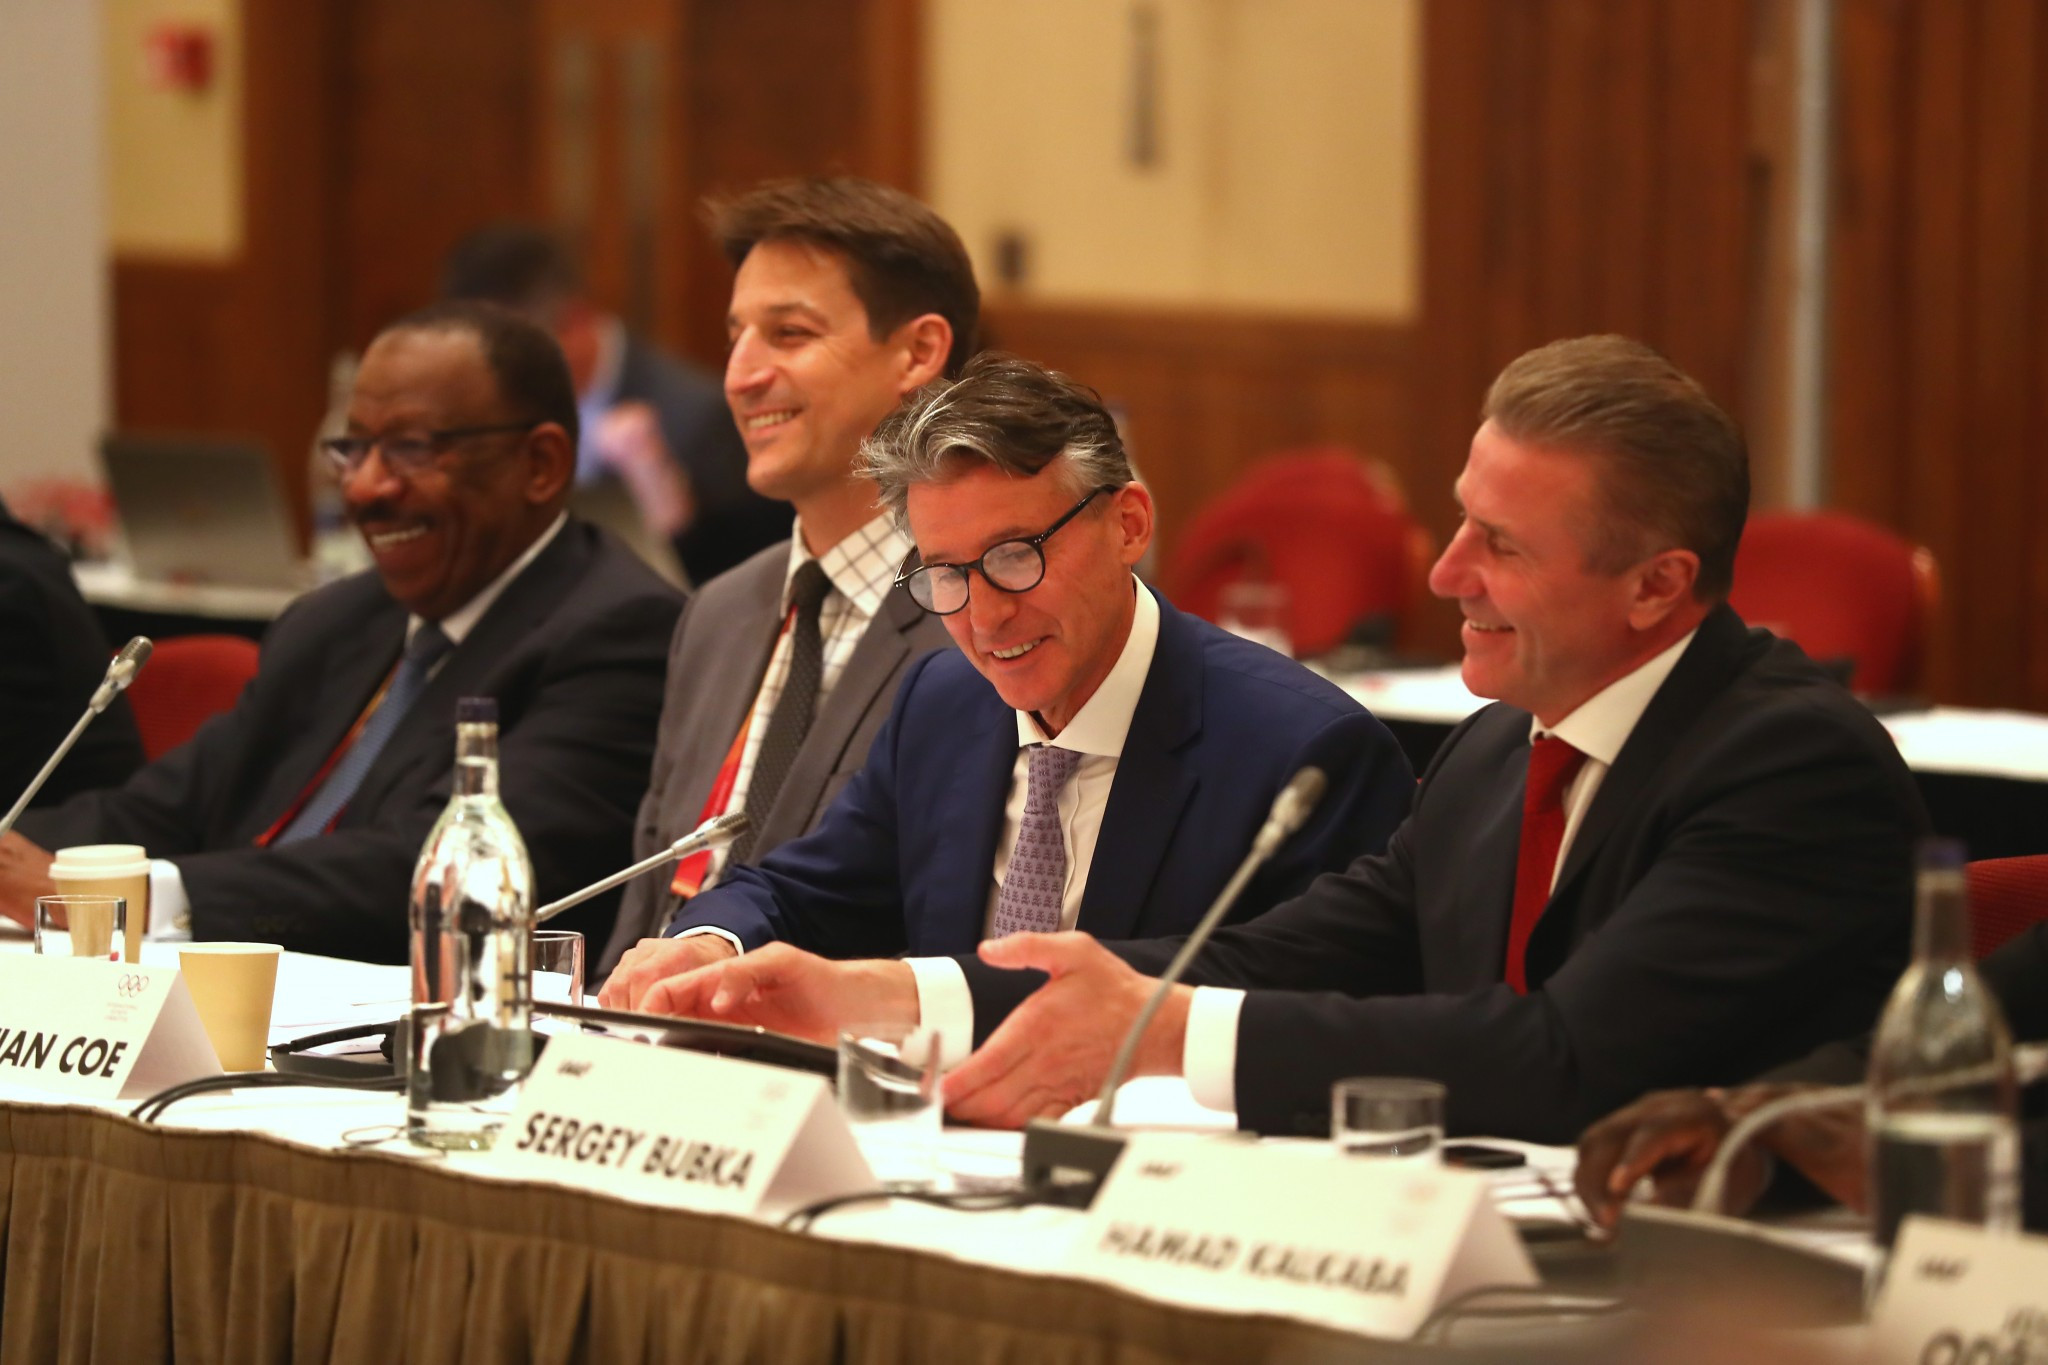 Sebastian Coe, second right, claims to be prioritising ongoing reforms within the IAAF ©Getty Images